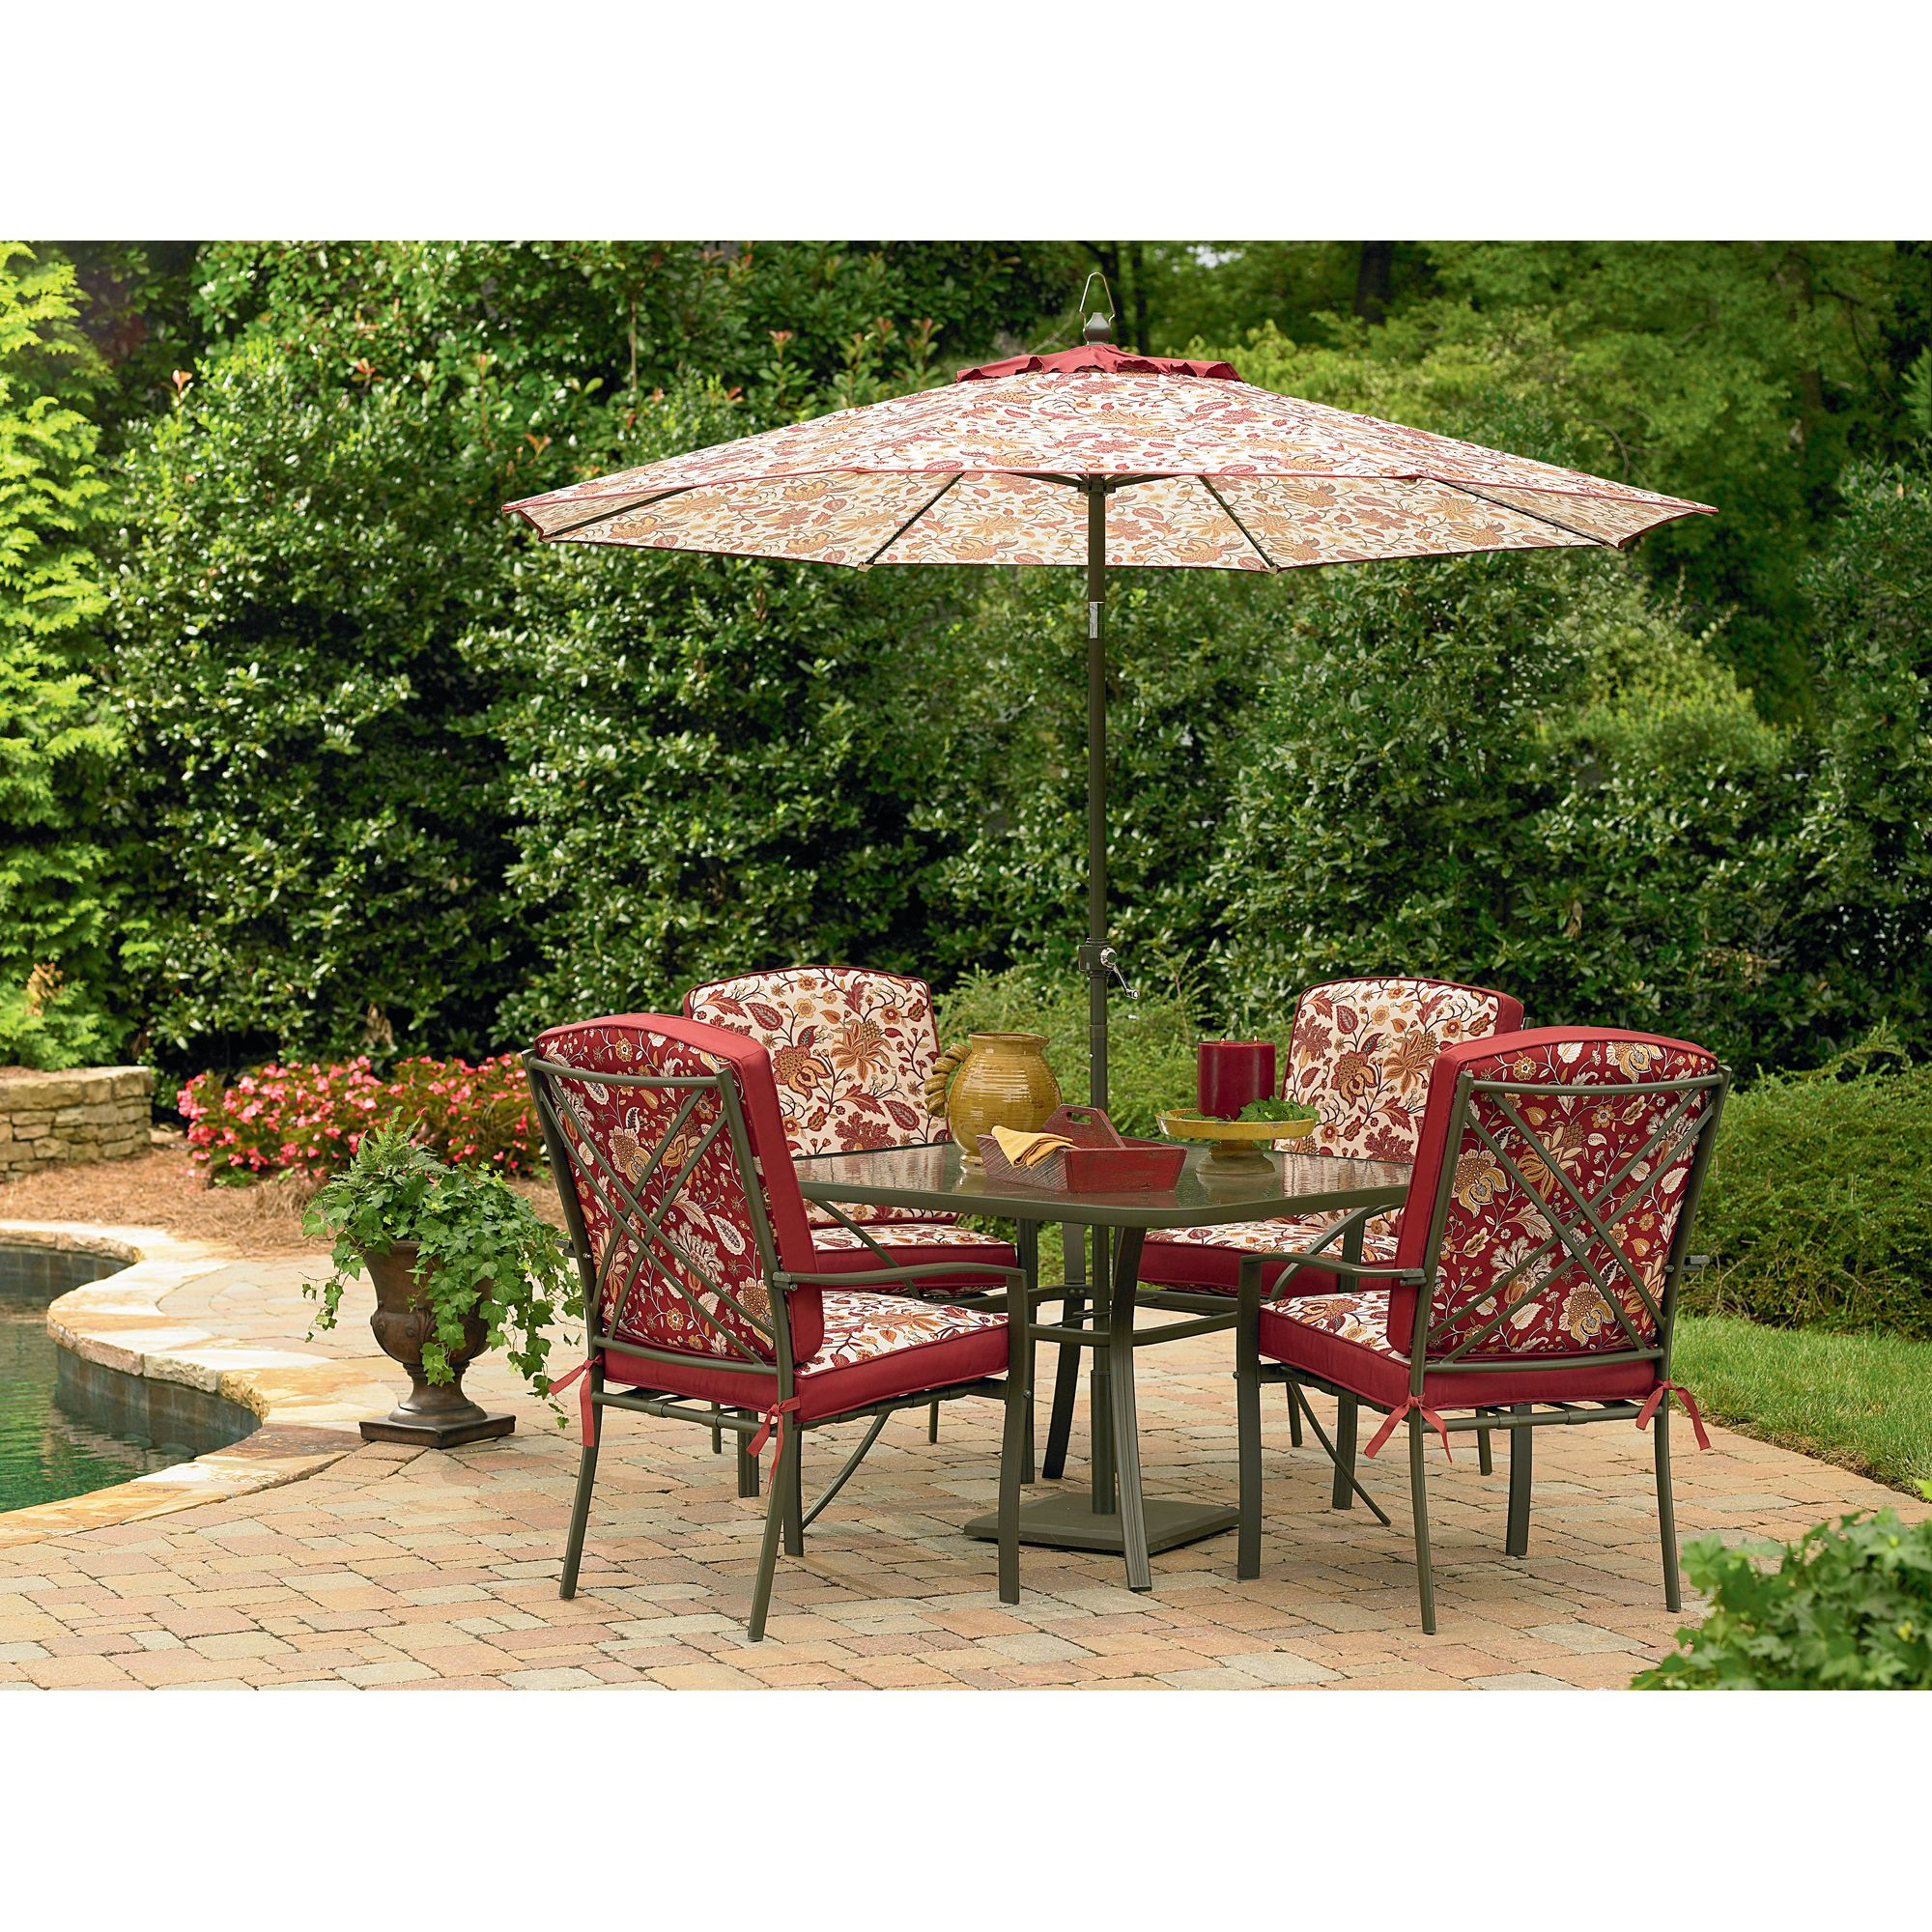 Essential Garden Laurelhurst 4 Cushion Patio Dining Chairs ... on Casual Living Patio id=20102